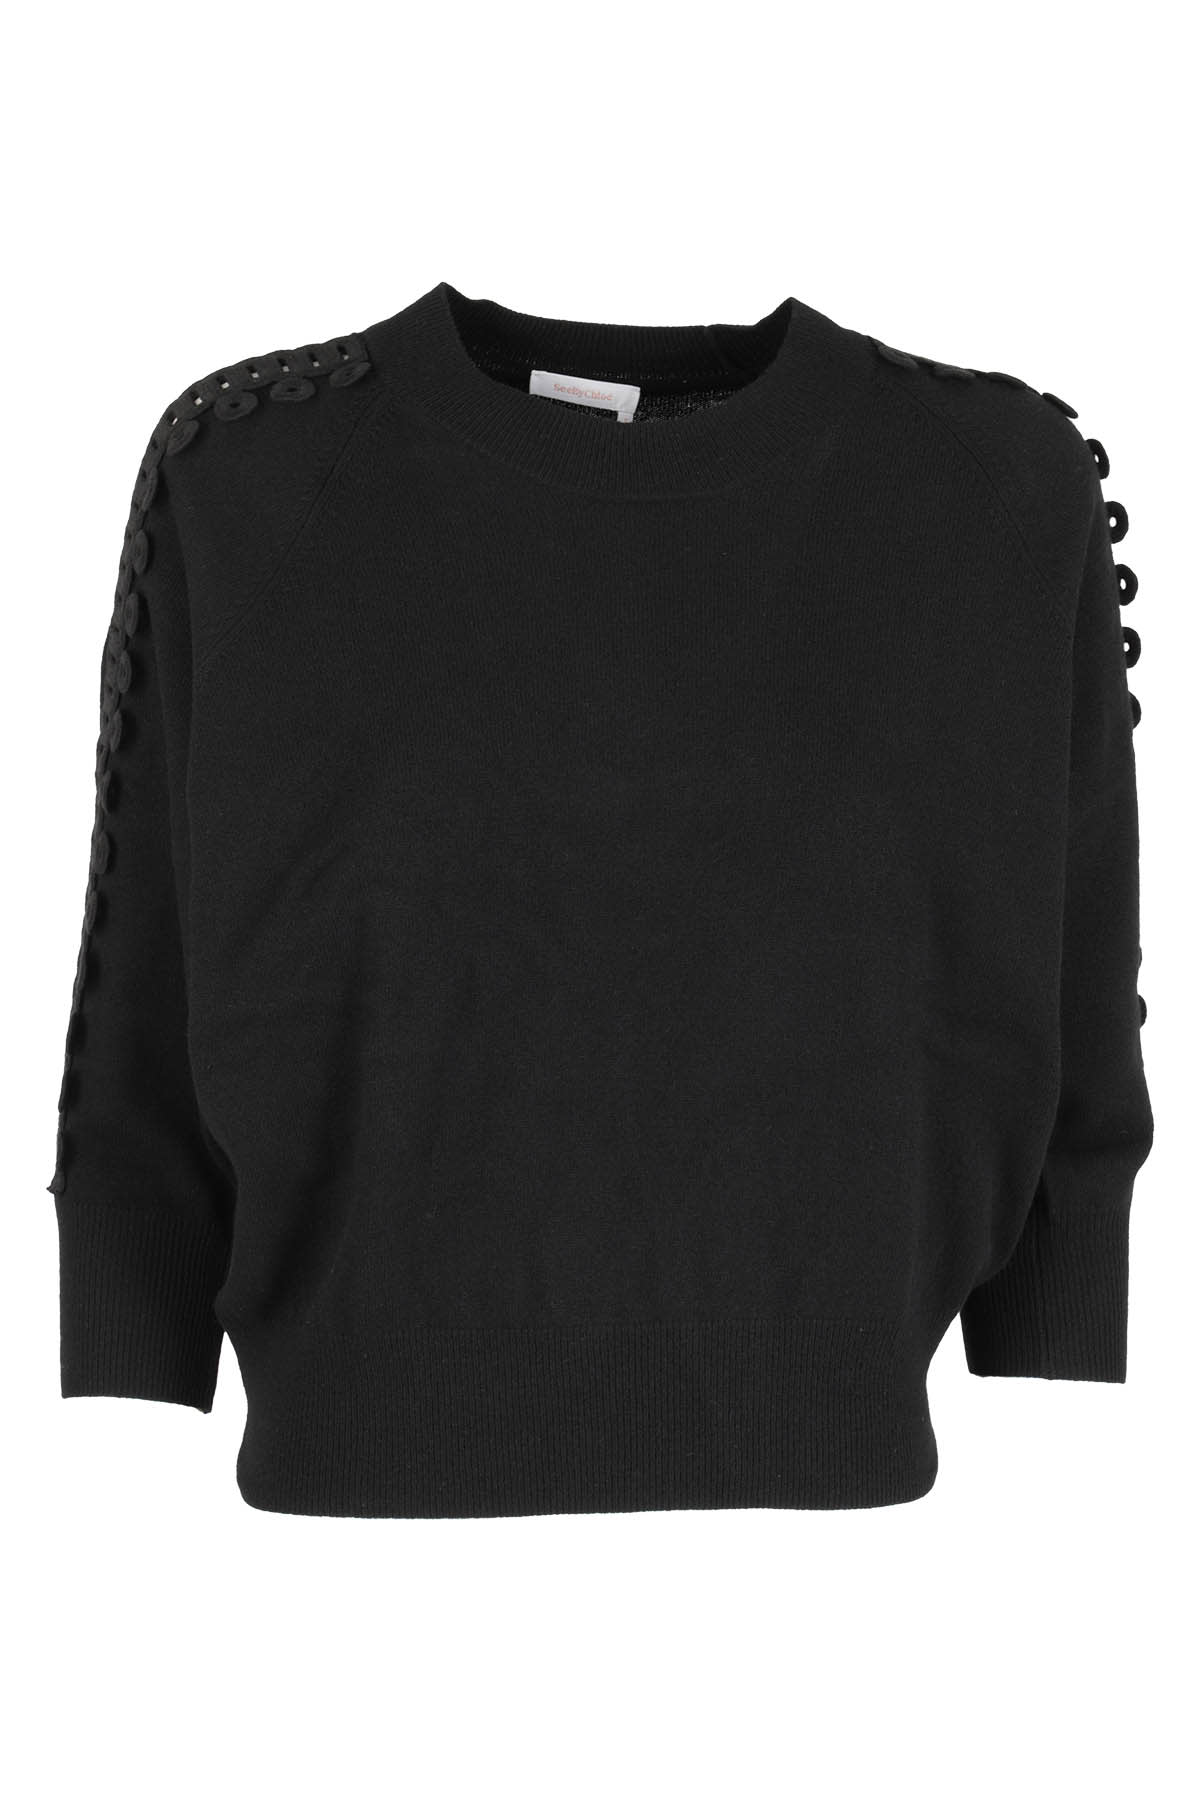 See By Chloé Sweater In Nero